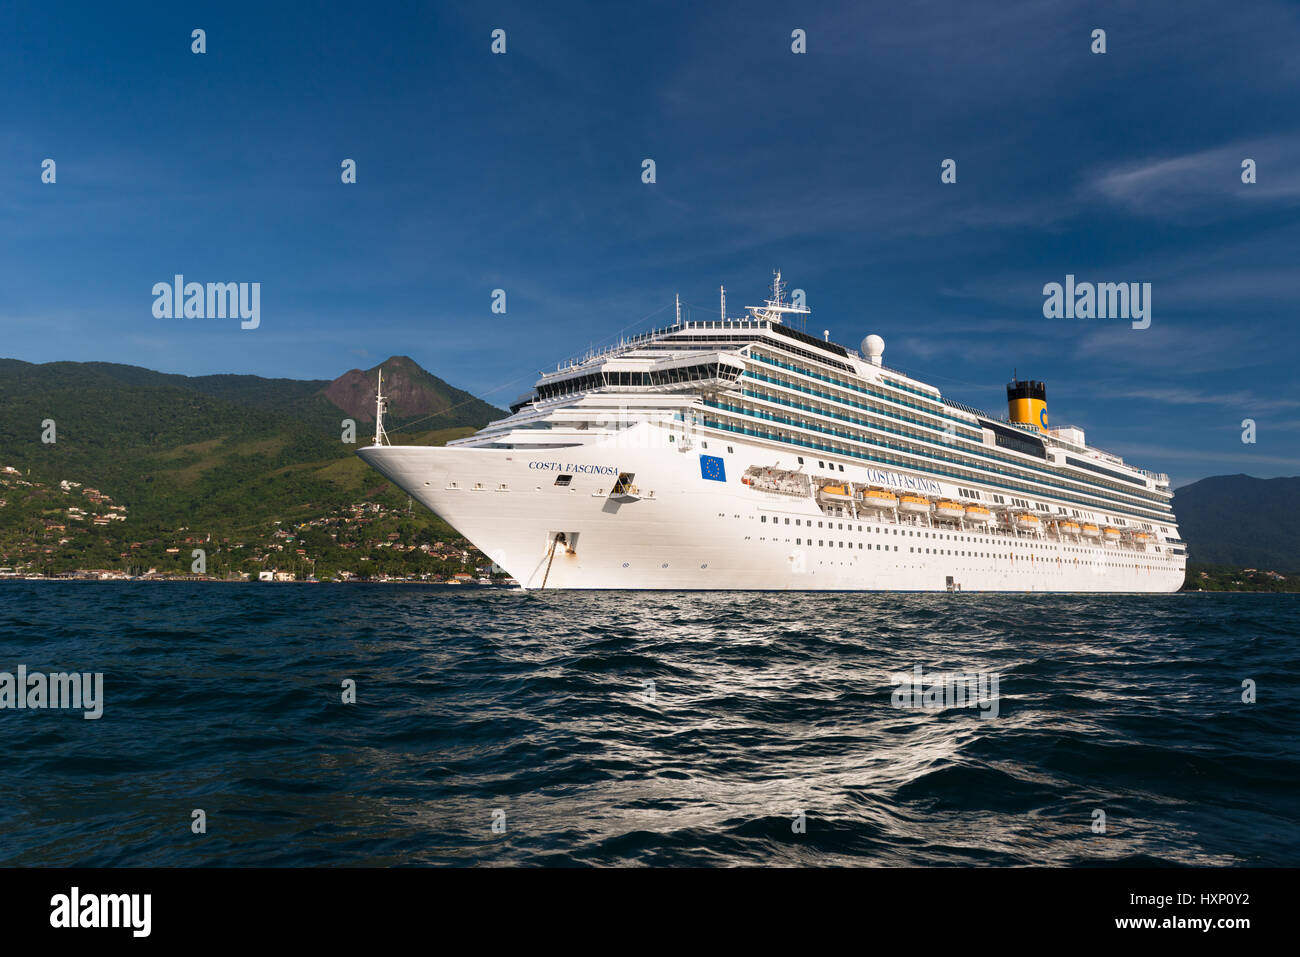 Costa Fascinosa cruise ship anchored off Ilhabela Stock Photo